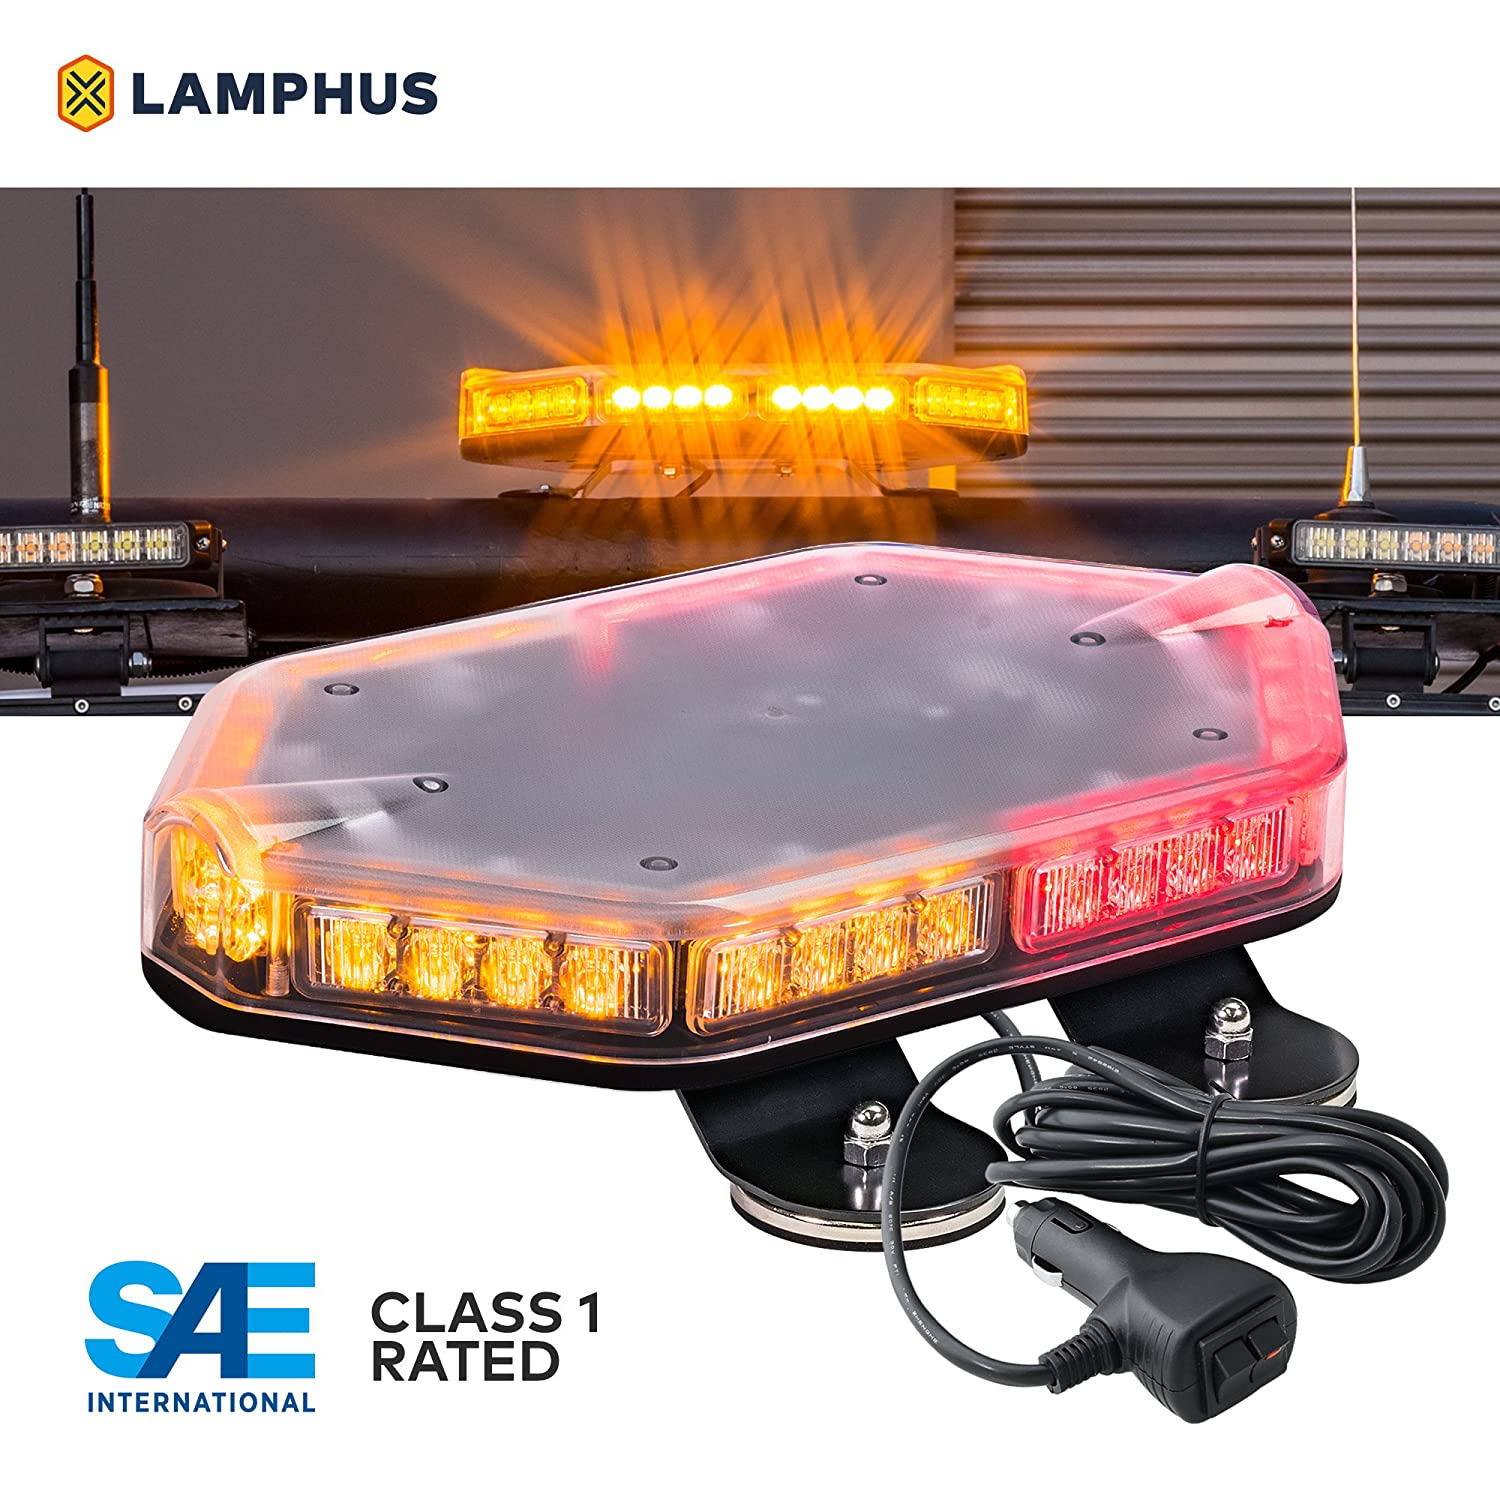 LAMPHUS NanoFlare NFMB56 17' 56W LED Mini Light Bar [SAE Class 1] [63 Flash Patterns] [12ft Cord] [Magnet/Permanent Mount] Emergency Strobe Hazard Warning Light - Amber